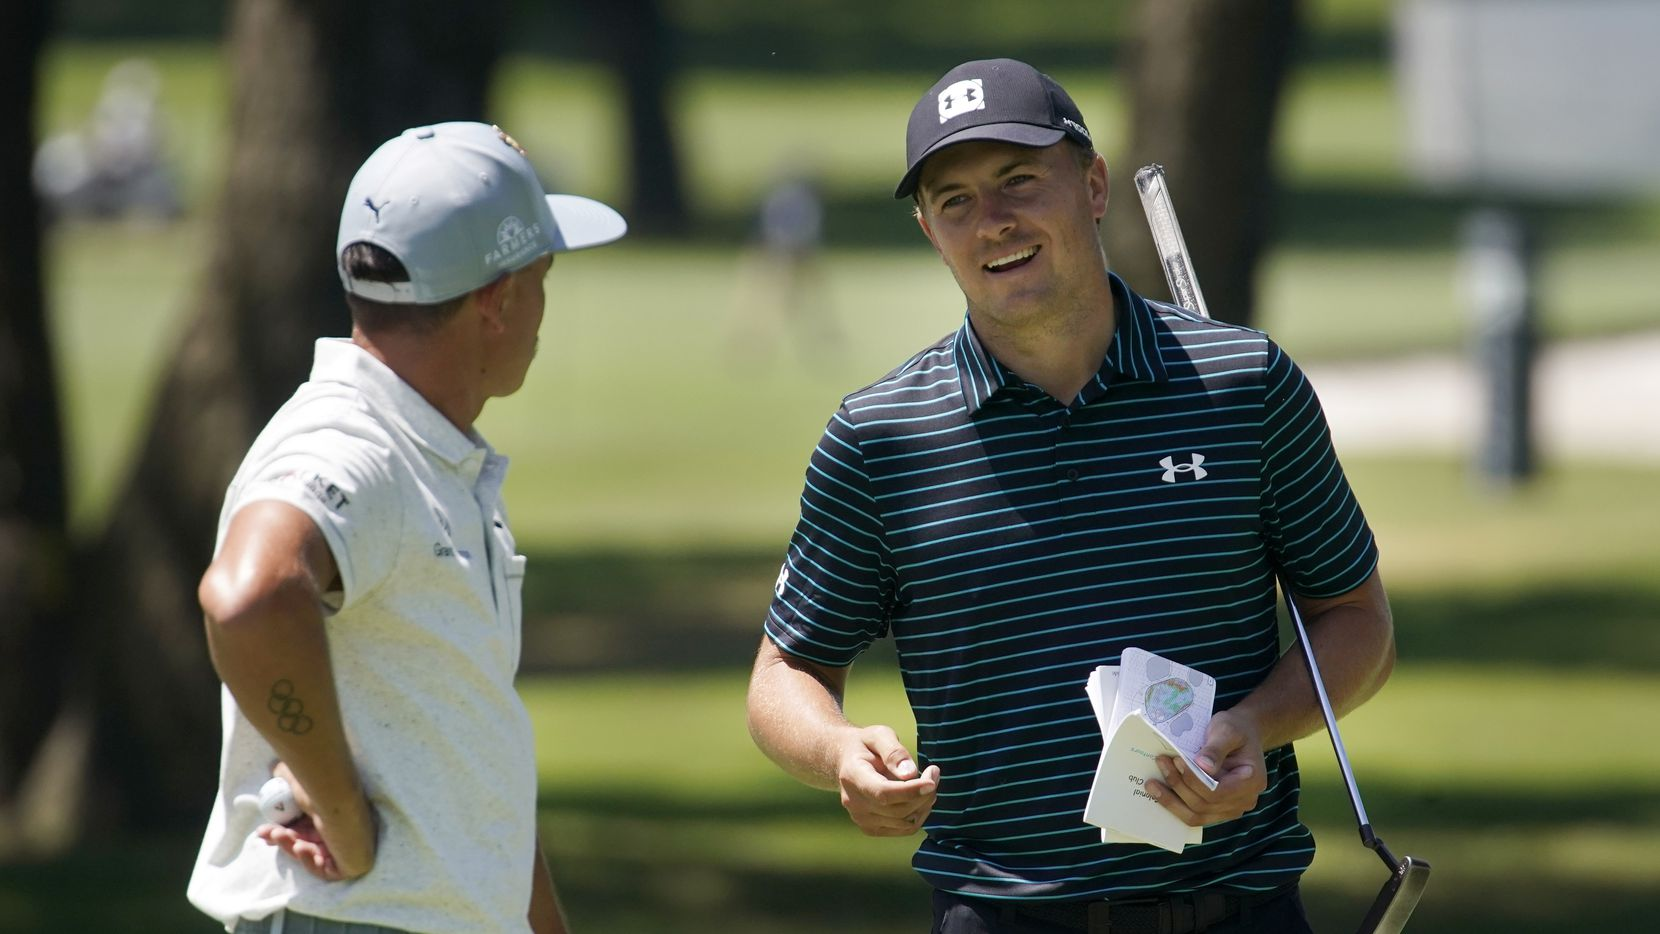 PGA Tour golfer Jordan Spieth visits with playing partner Rickie Fowler after putting on No. 7 during the second round of the Charles Schwab Challenge at the Colonial Country Club in Fort Worth, Friday, June 12, 2020.